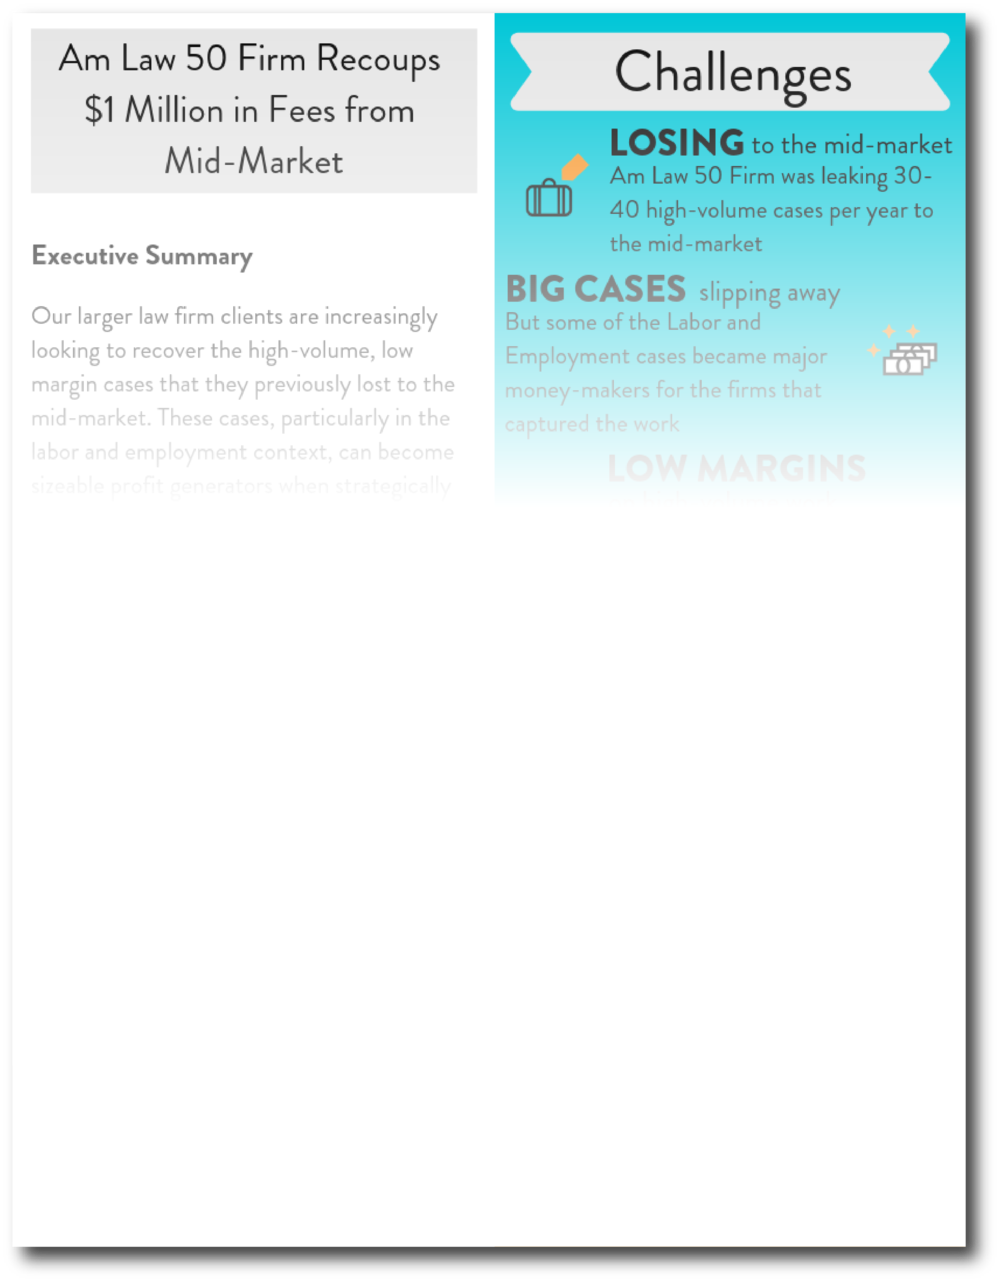 Am Law 50 Firm Recoups $1 Million in Fees from Mid-Market - • Assess why larger law firm clients are working to recover previously lost high-volume, low margin cases• Uncover the challenges of letting big money-maker cases slip away• Guide to the benefits and rewards of protecting client relationships and recover lost cases